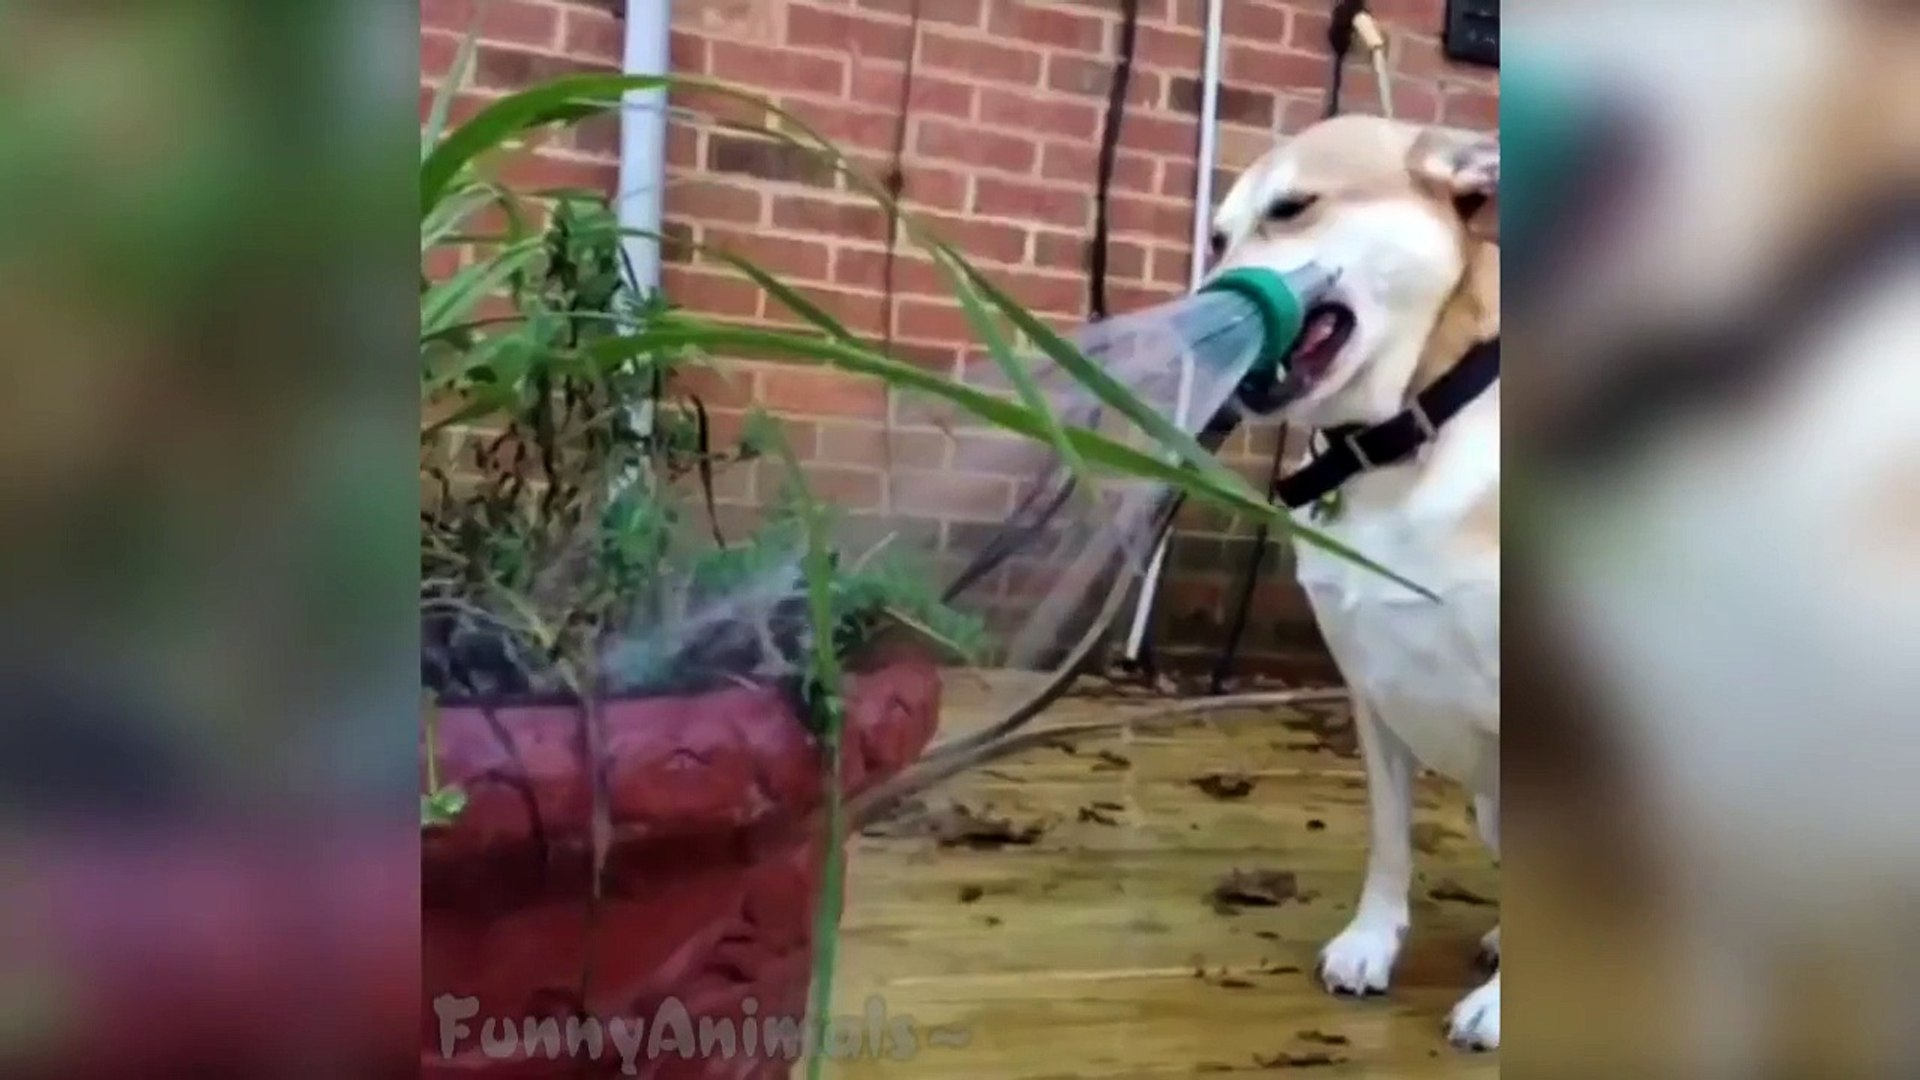 Pets and Animals Vines Compilation - Funny Animals Vines 2015